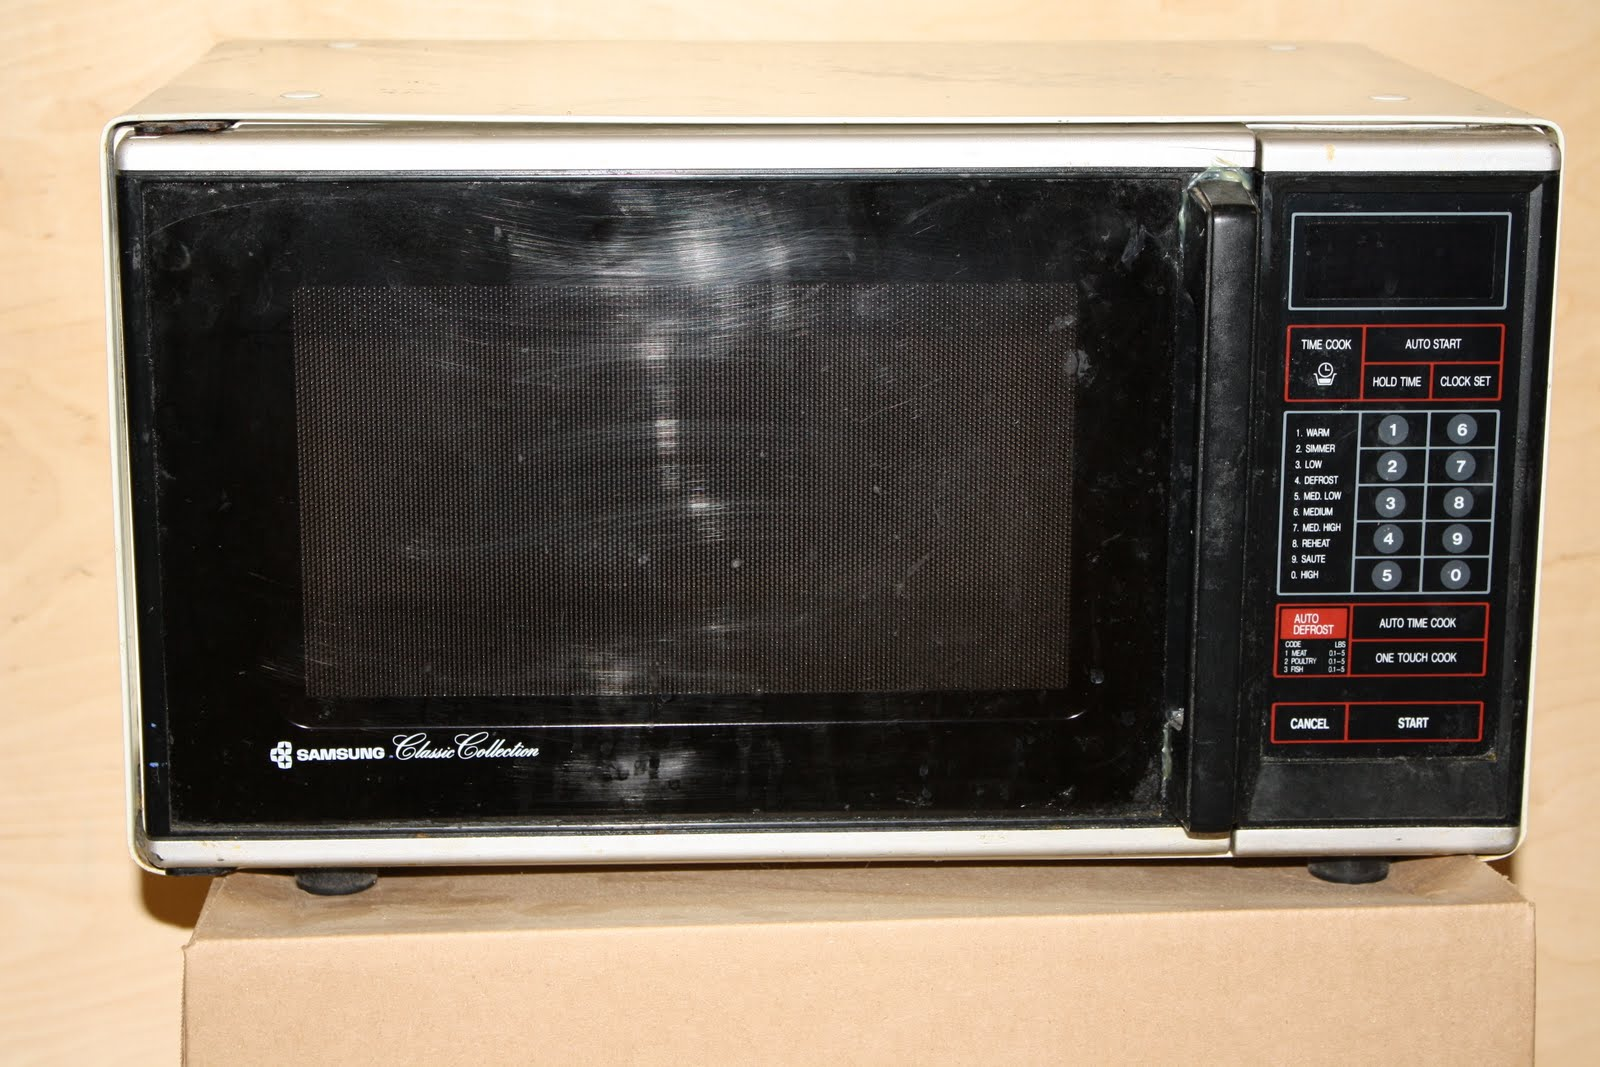 I C Church Auction 2011 Samsung Microwave